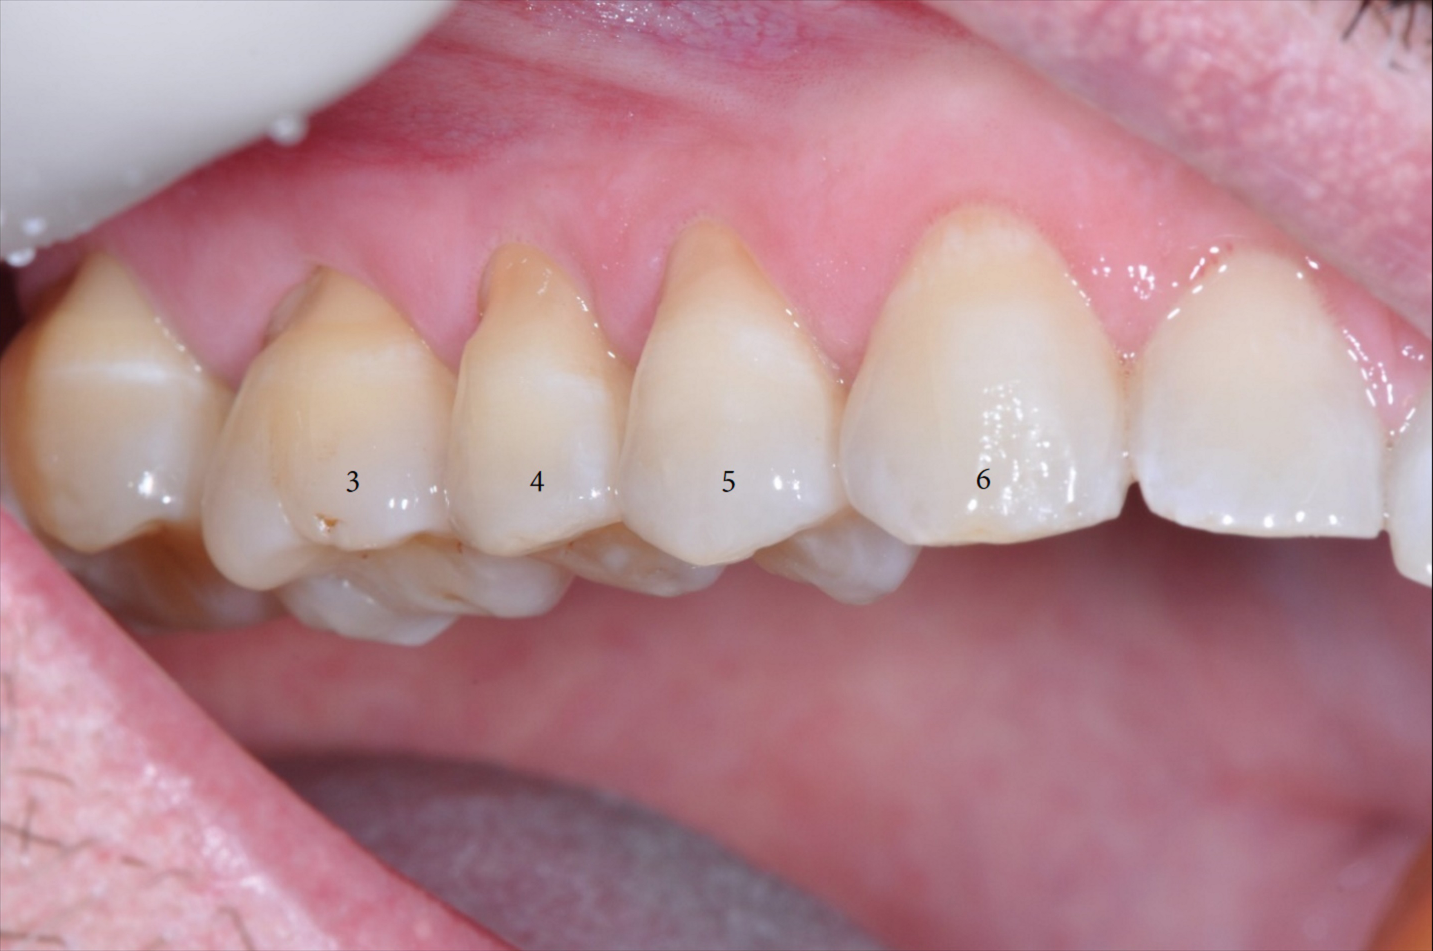 Pinhole Surgical Approach Teeth 3-6-3.png